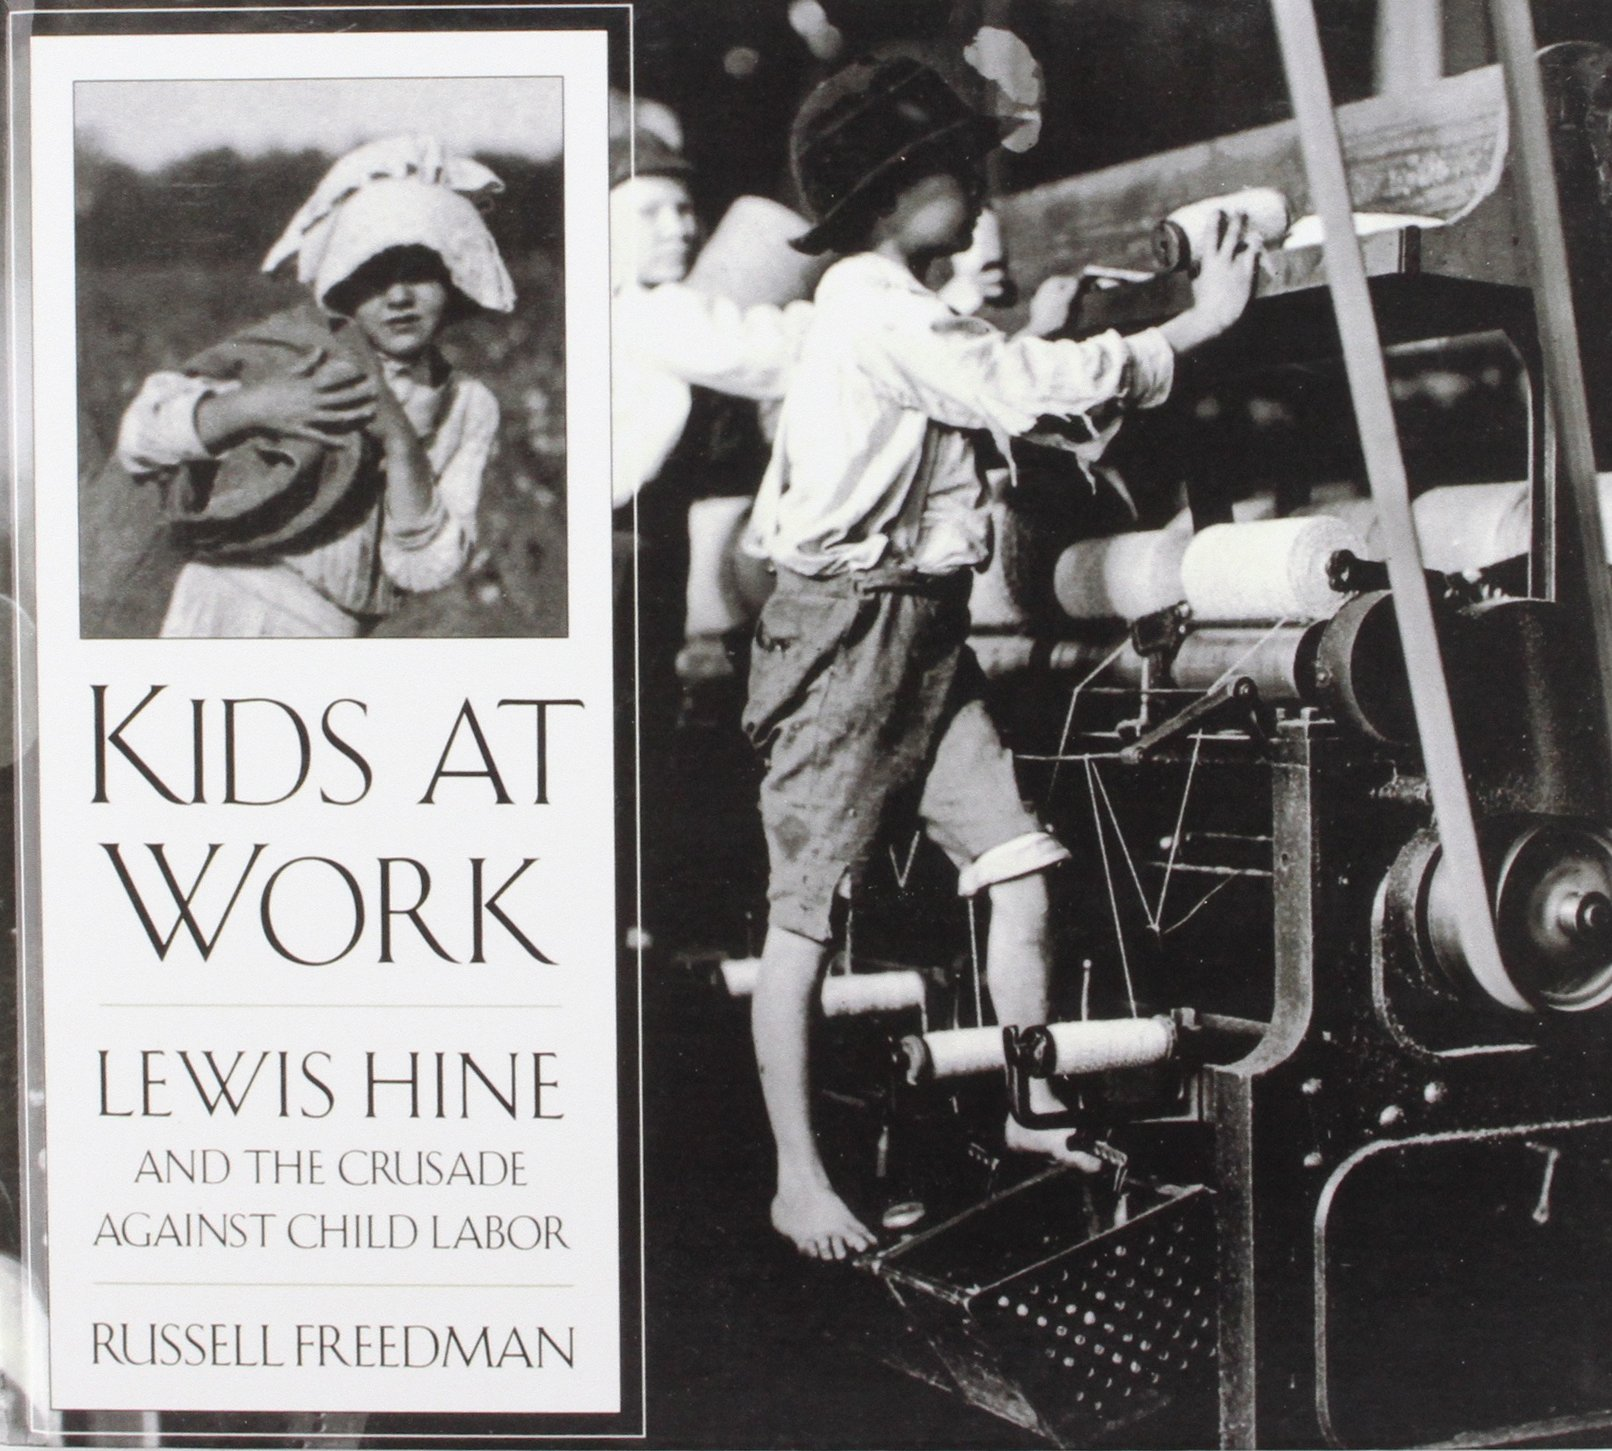 kids-at-work-lewis-hine-and-the-crusade-against-child-labor